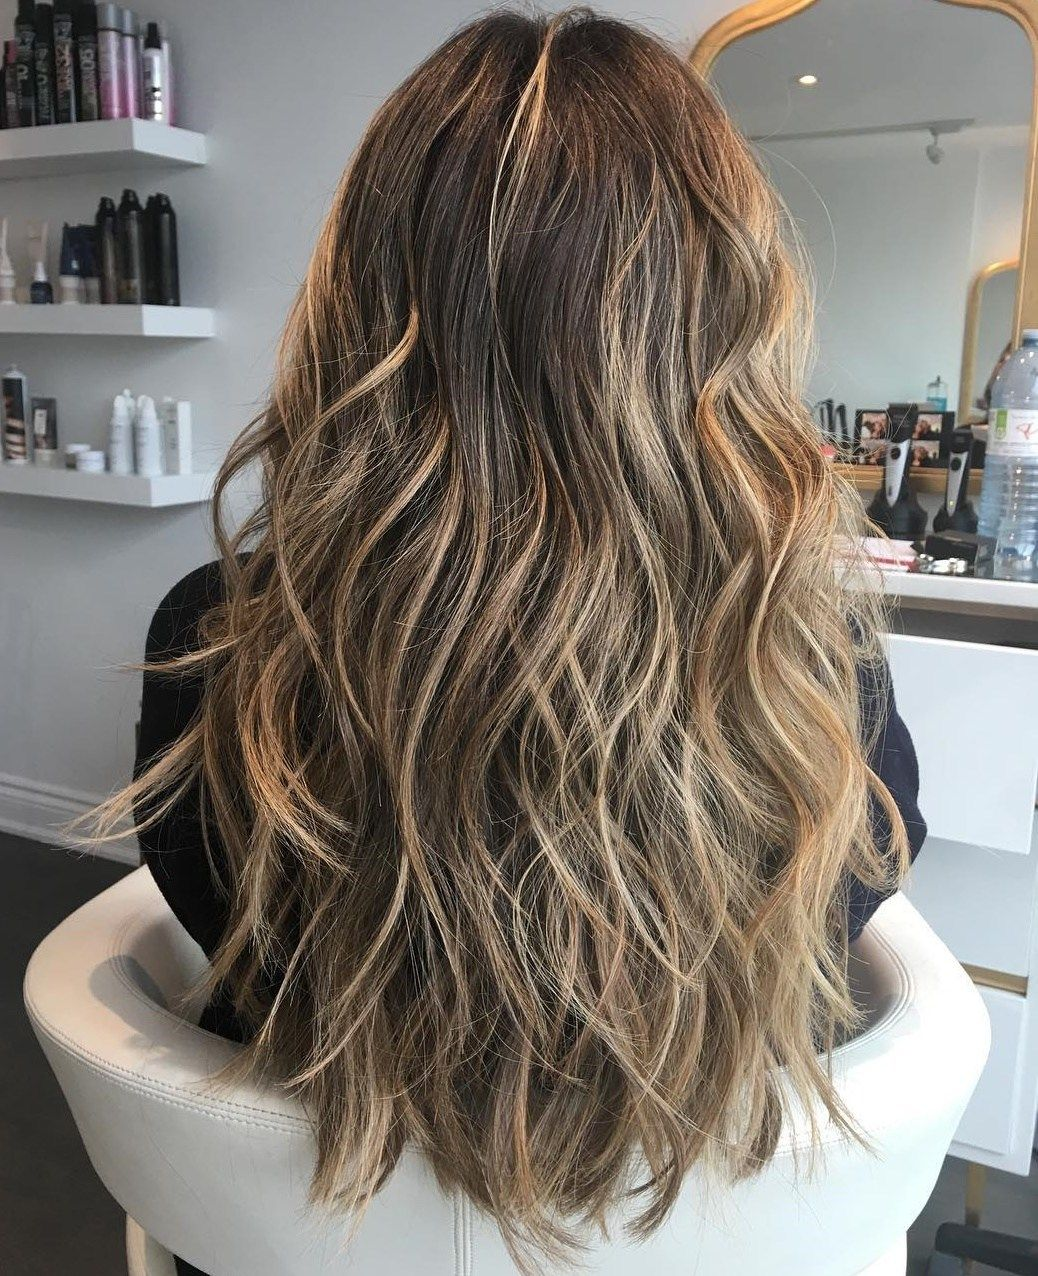 50 New Long Hairstyles With Layers For 2020 Hair Adviser Long Layered Hair Haircuts For Long Hair Long Hair Waves